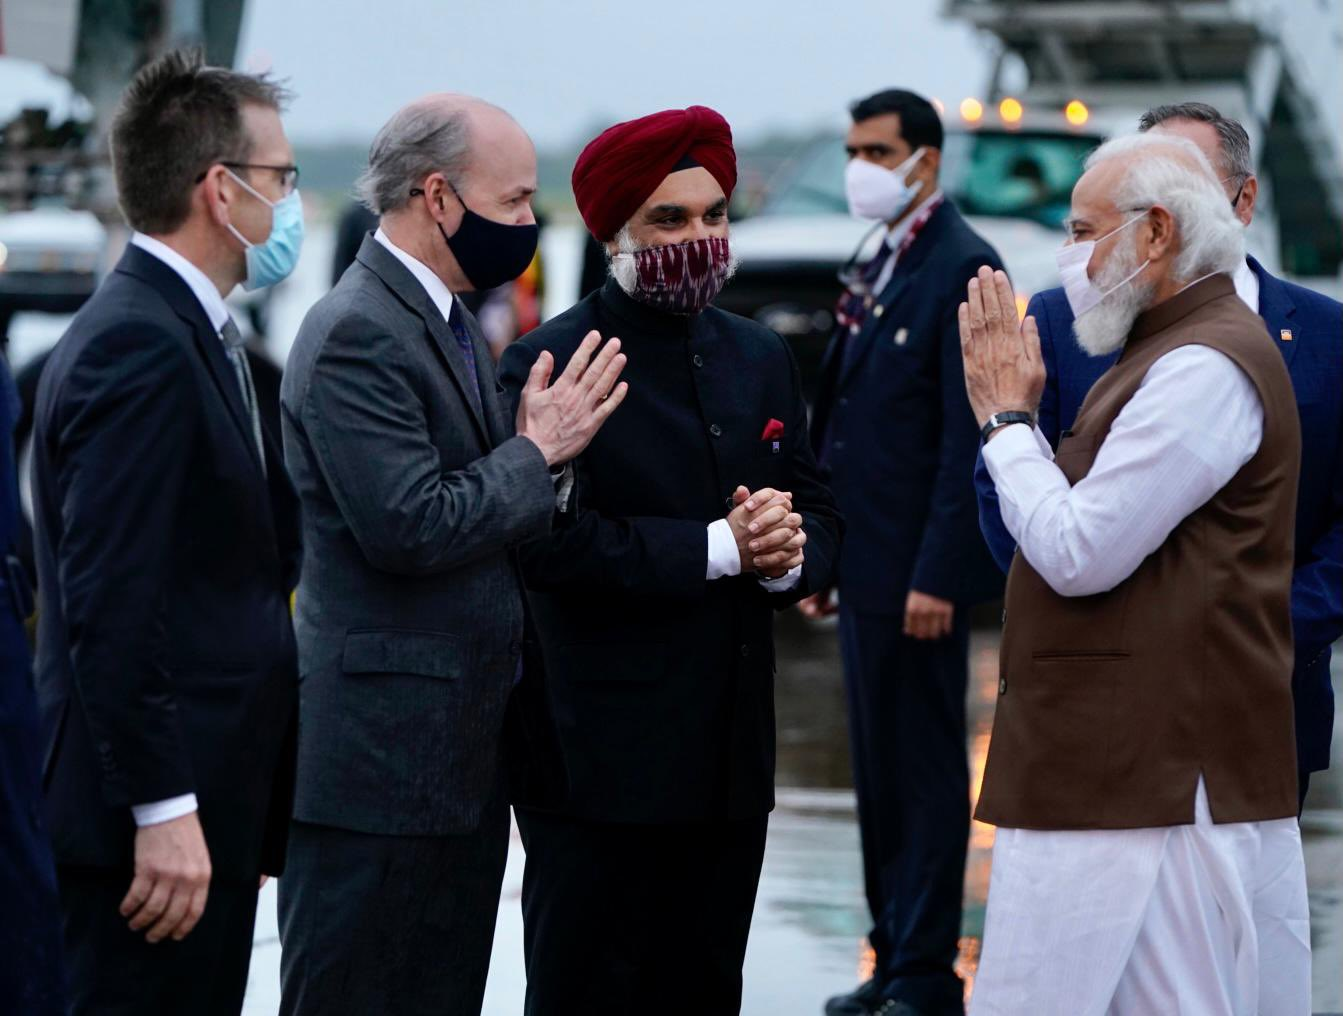 was received at the airport by senior officials of the Biden Administration and India's Ambassador to the US, Taranjit Singh Sandhu.